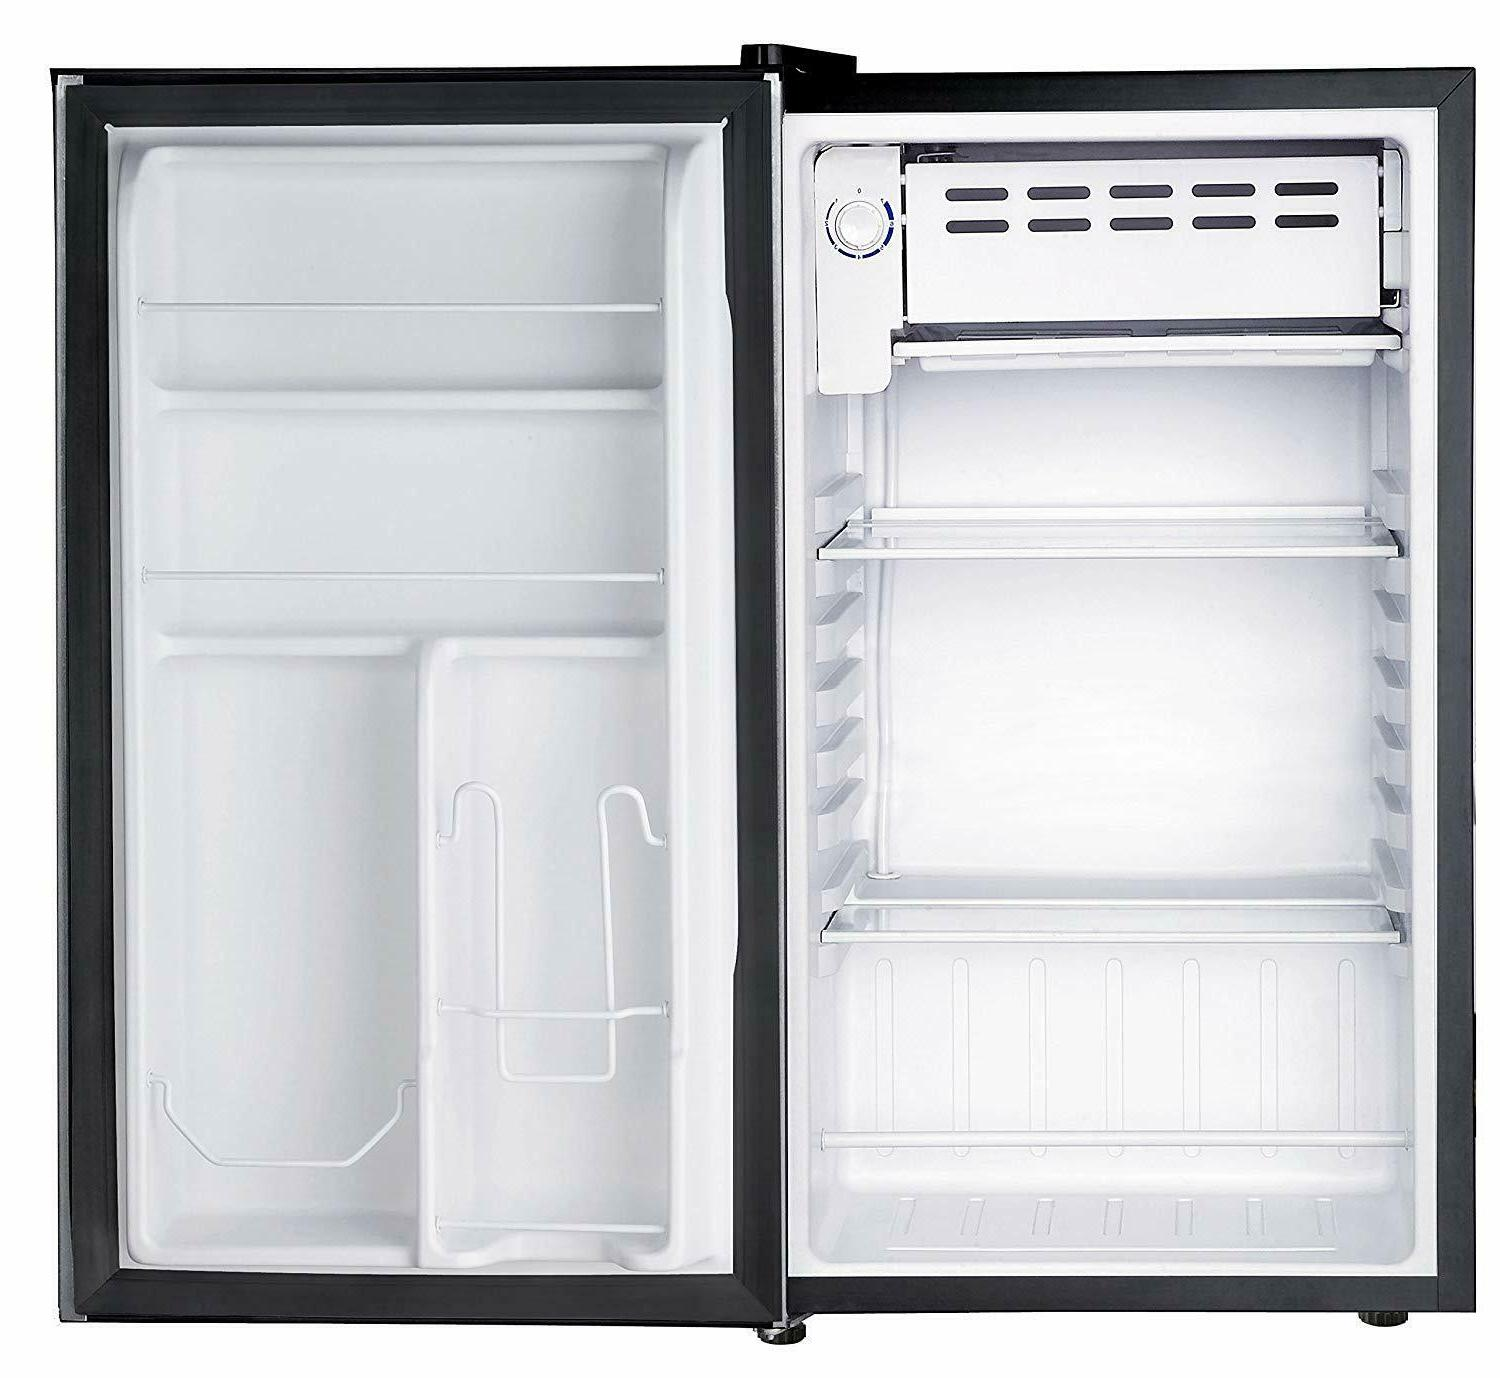 RCA RFR321-FR320/8 IGLOO Refrigerator, 3.2 Fridge, Steel